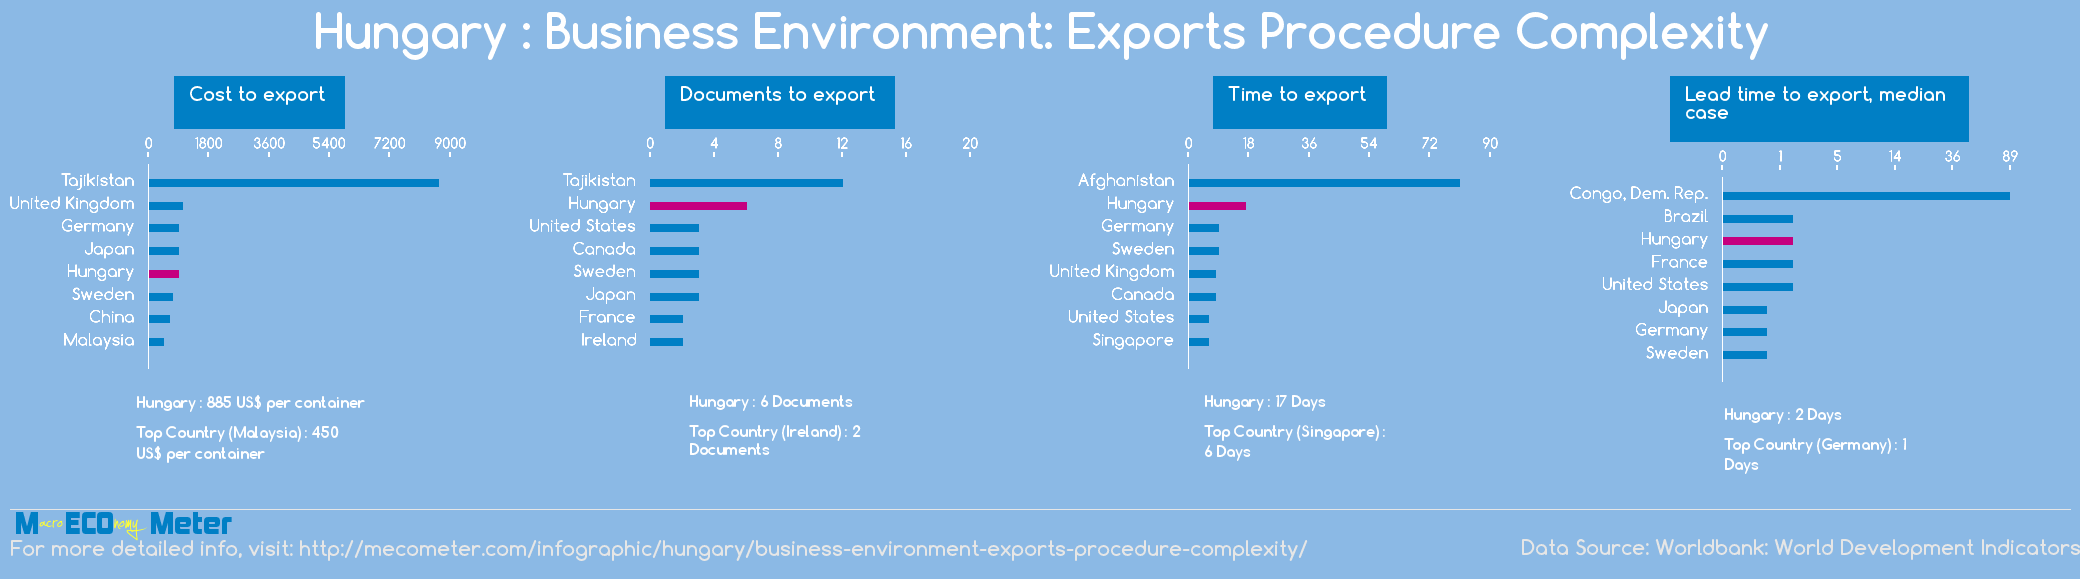 Hungary : Business Environment: Exports Procedure Complexity